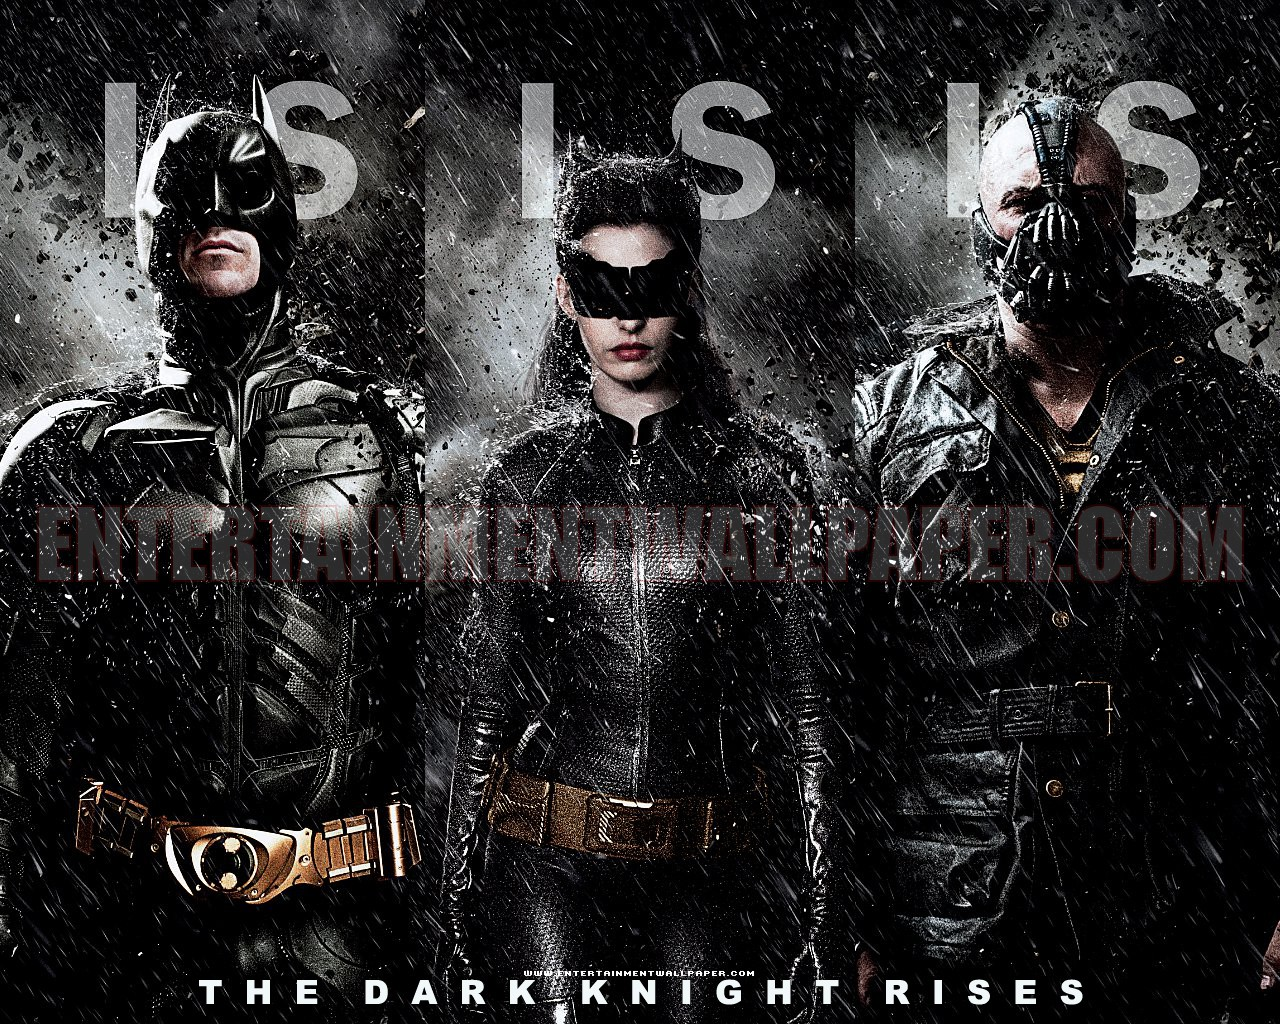 http://1.bp.blogspot.com/-3vJwVrRZGwA/UA27lSA-w9I/AAAAAAAAAZU/ghmqP-S1YxE/s1600/The-Dark-Knight-Rises-2012-upcoming-movies-31017822-1280-1024%20(1).jpg